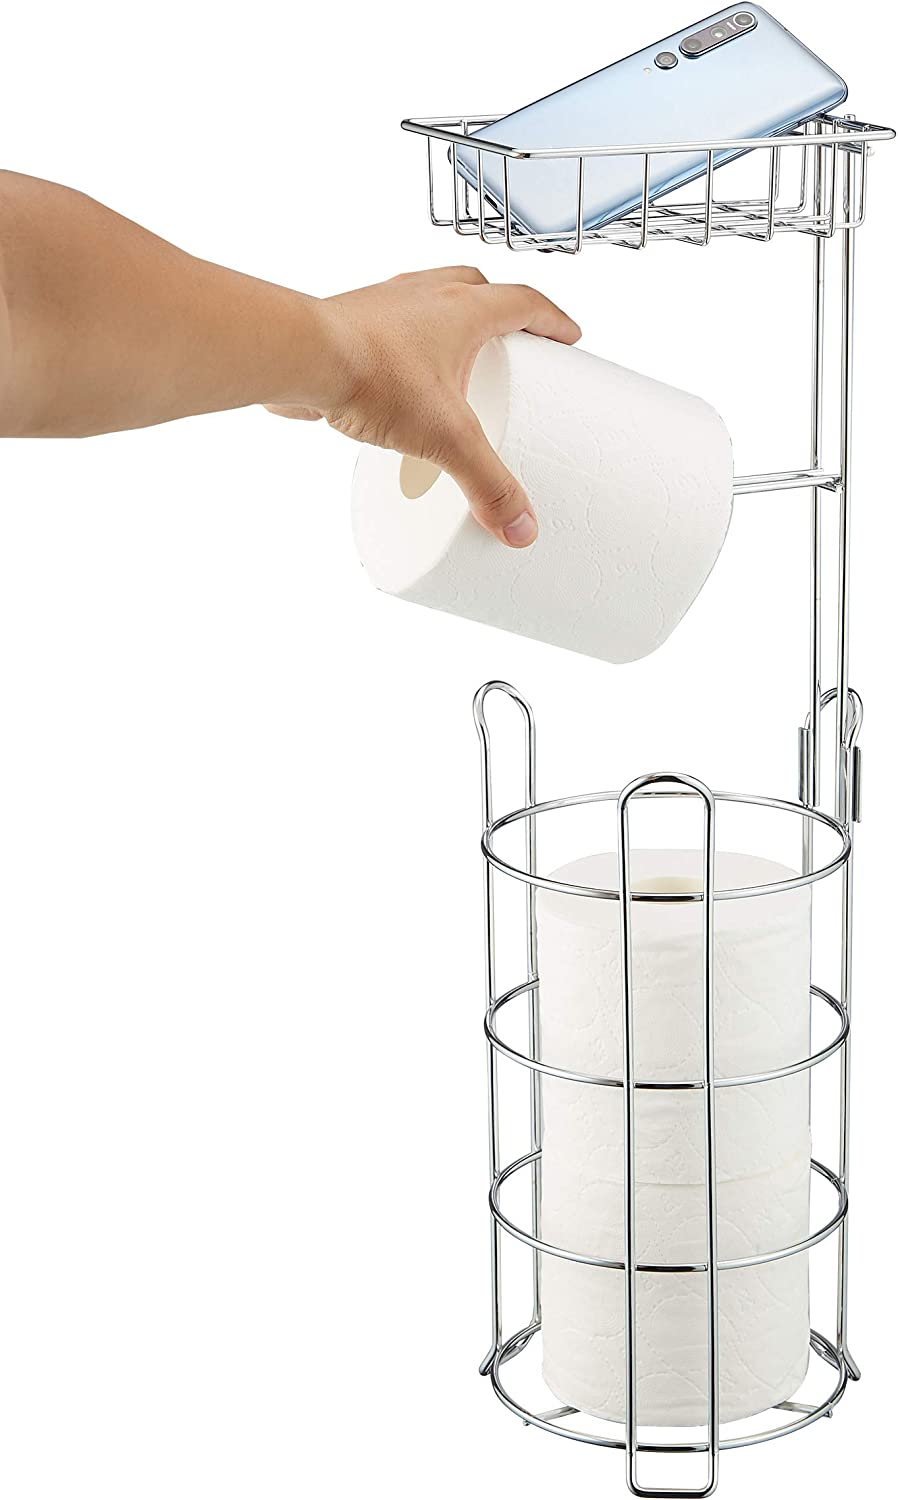 Toilet Paper Holder Free Financial Easy-to-use sales sale Standing Roll Tissue Holders Bathroom